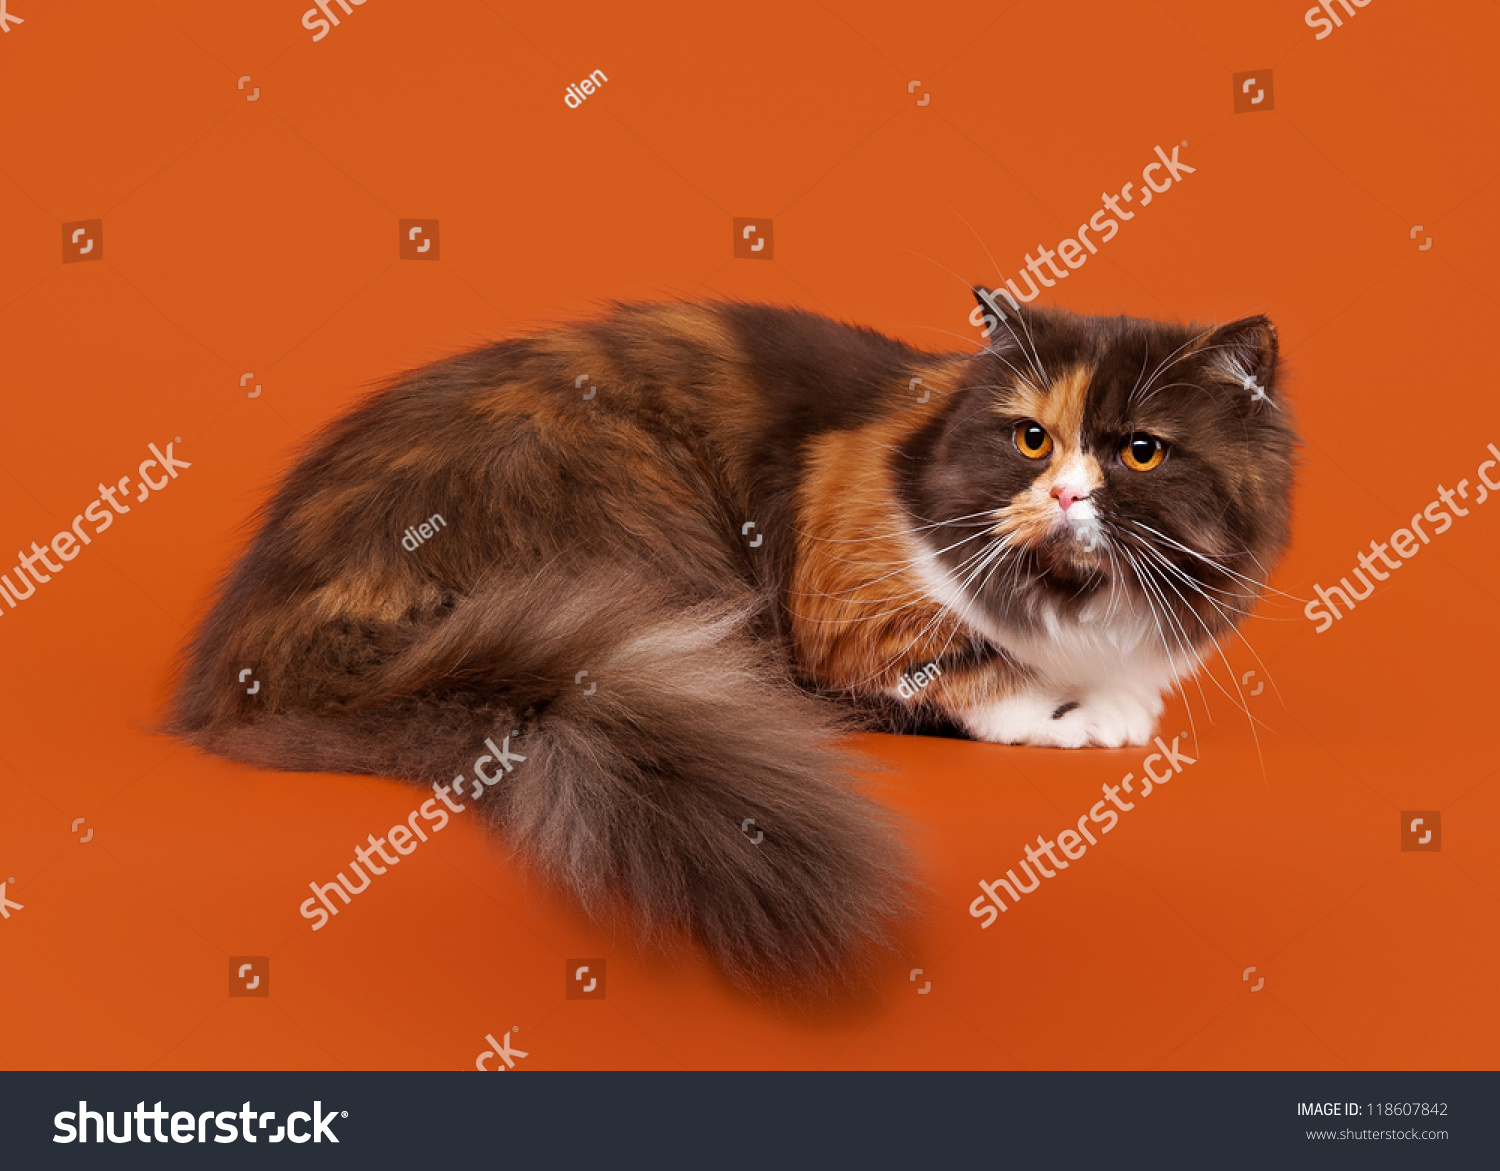 Tortoise scottish highland cat on nuts stock photo 118607842 tortoise scottish highland cat on nuts background publicscrutiny Image collections